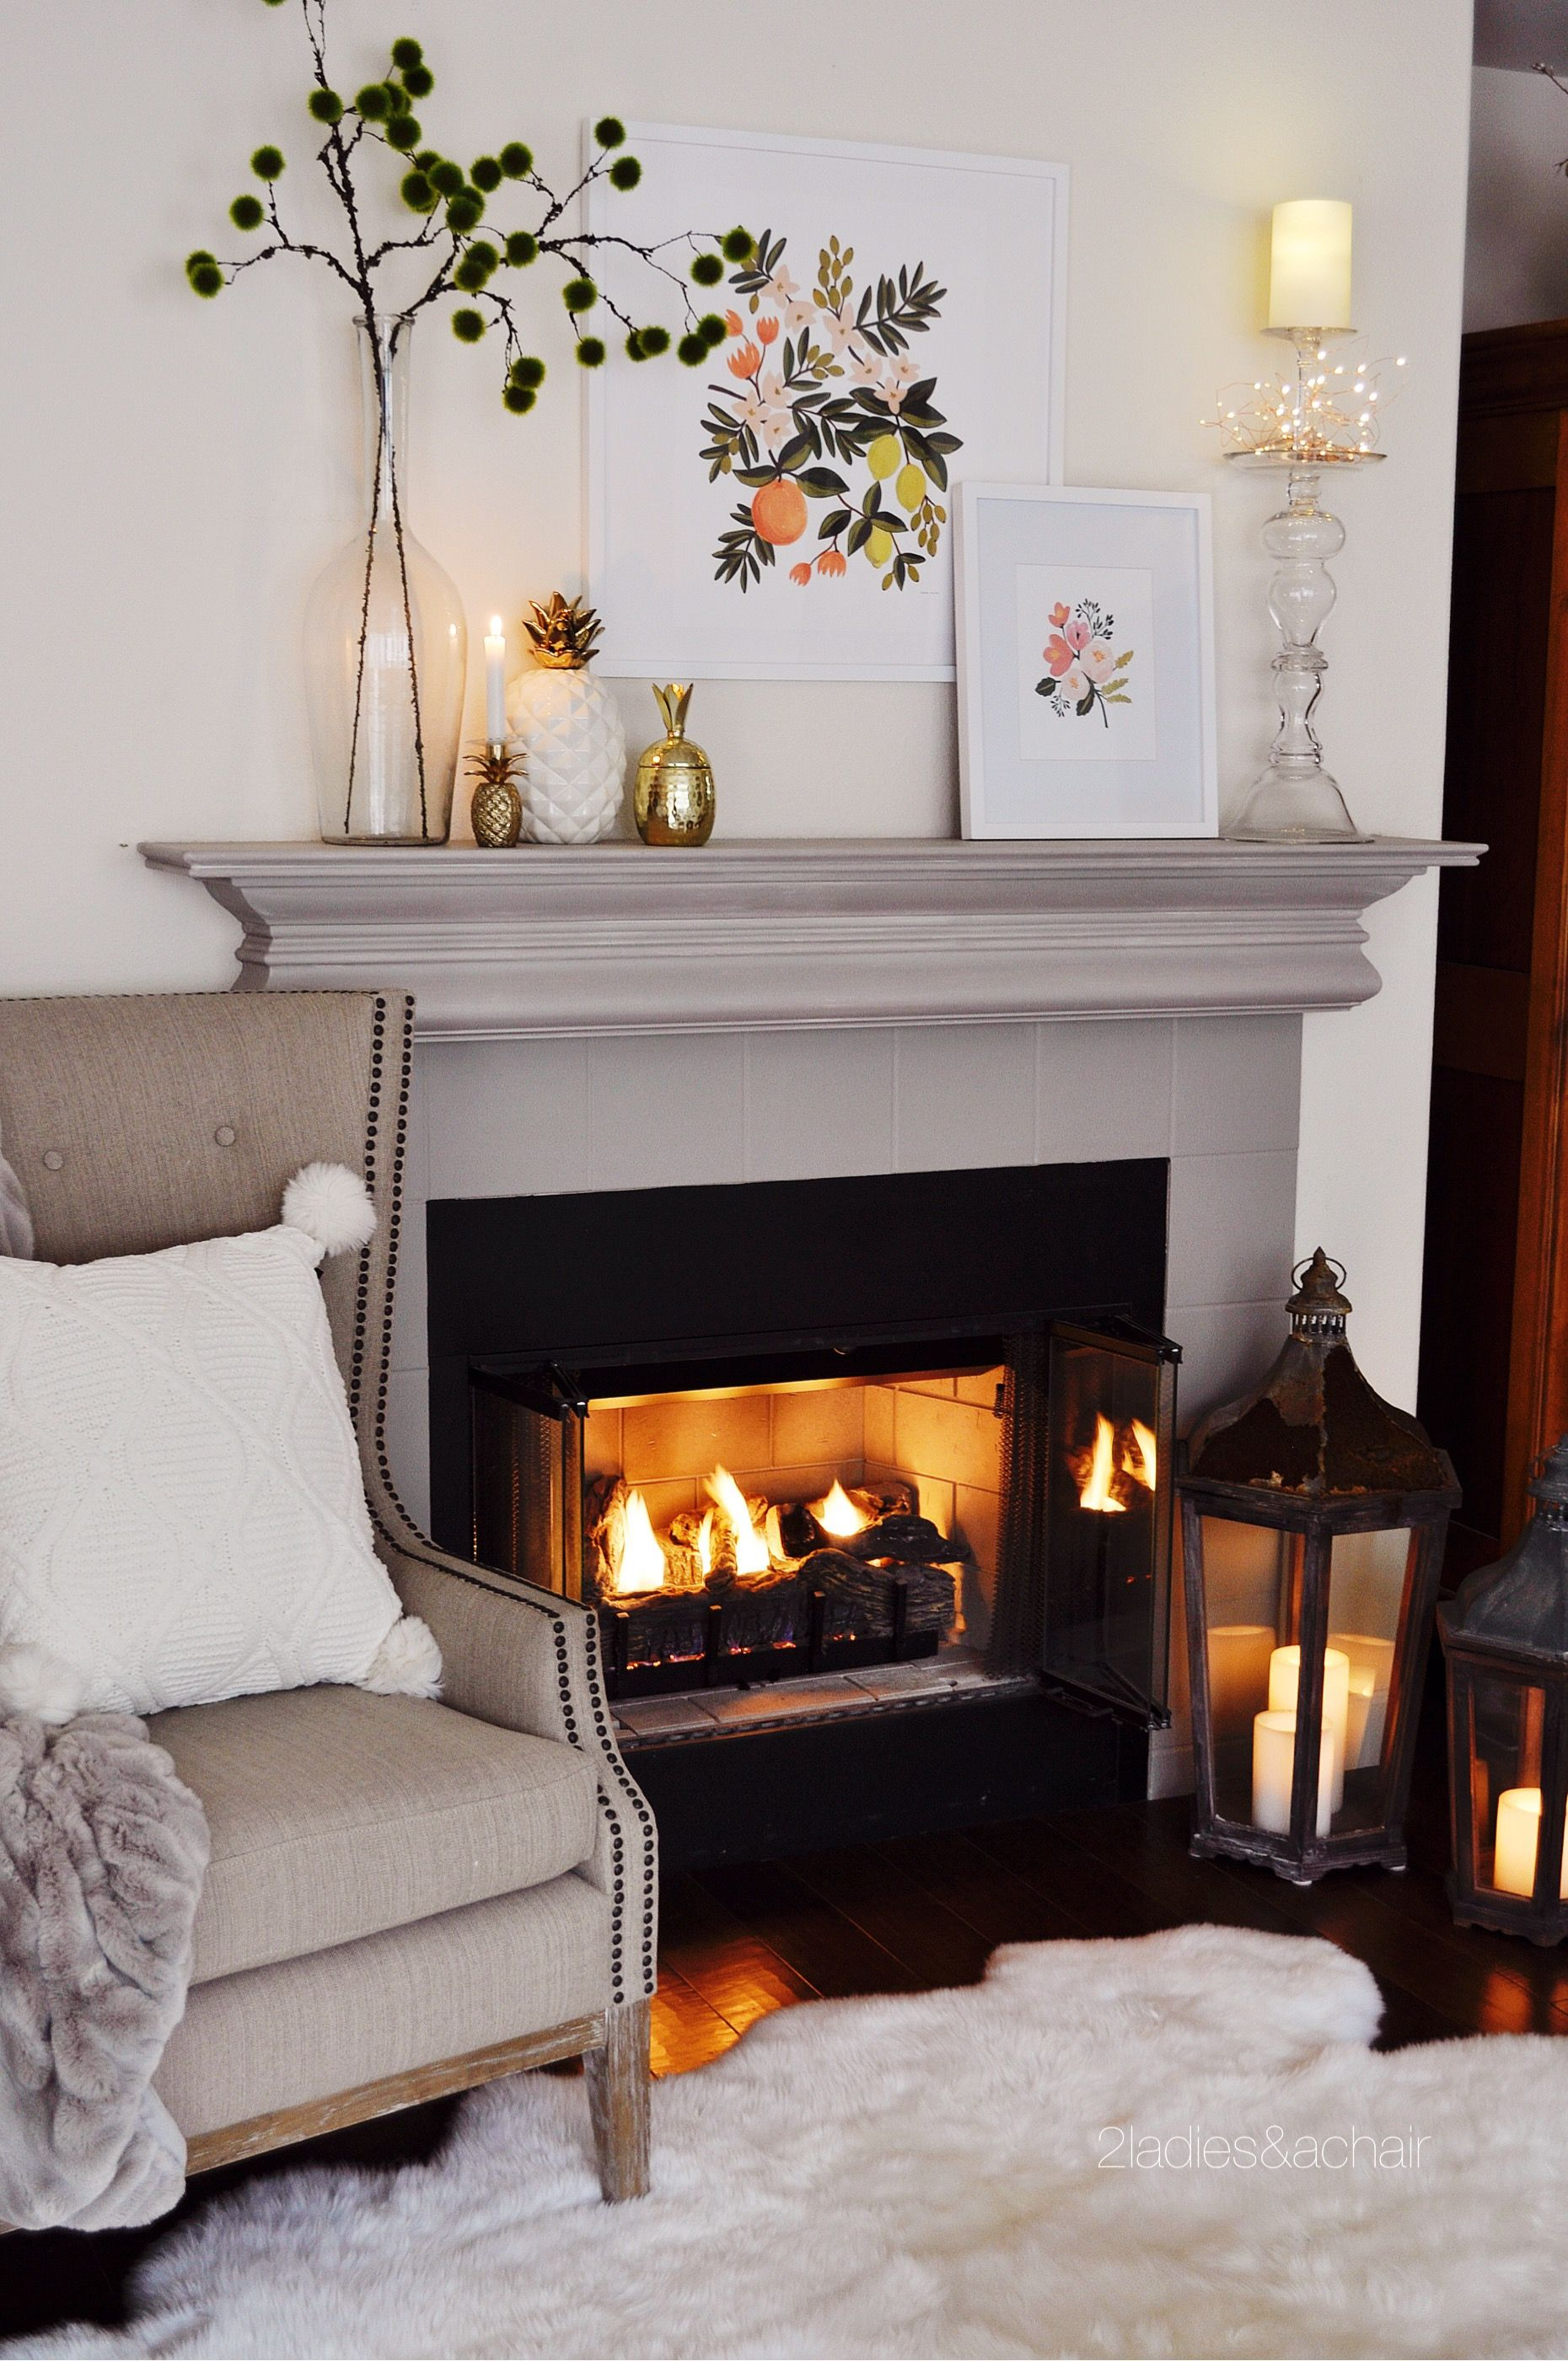 Light, Bright, and Cozy Decor Transitions from the Holiday Season